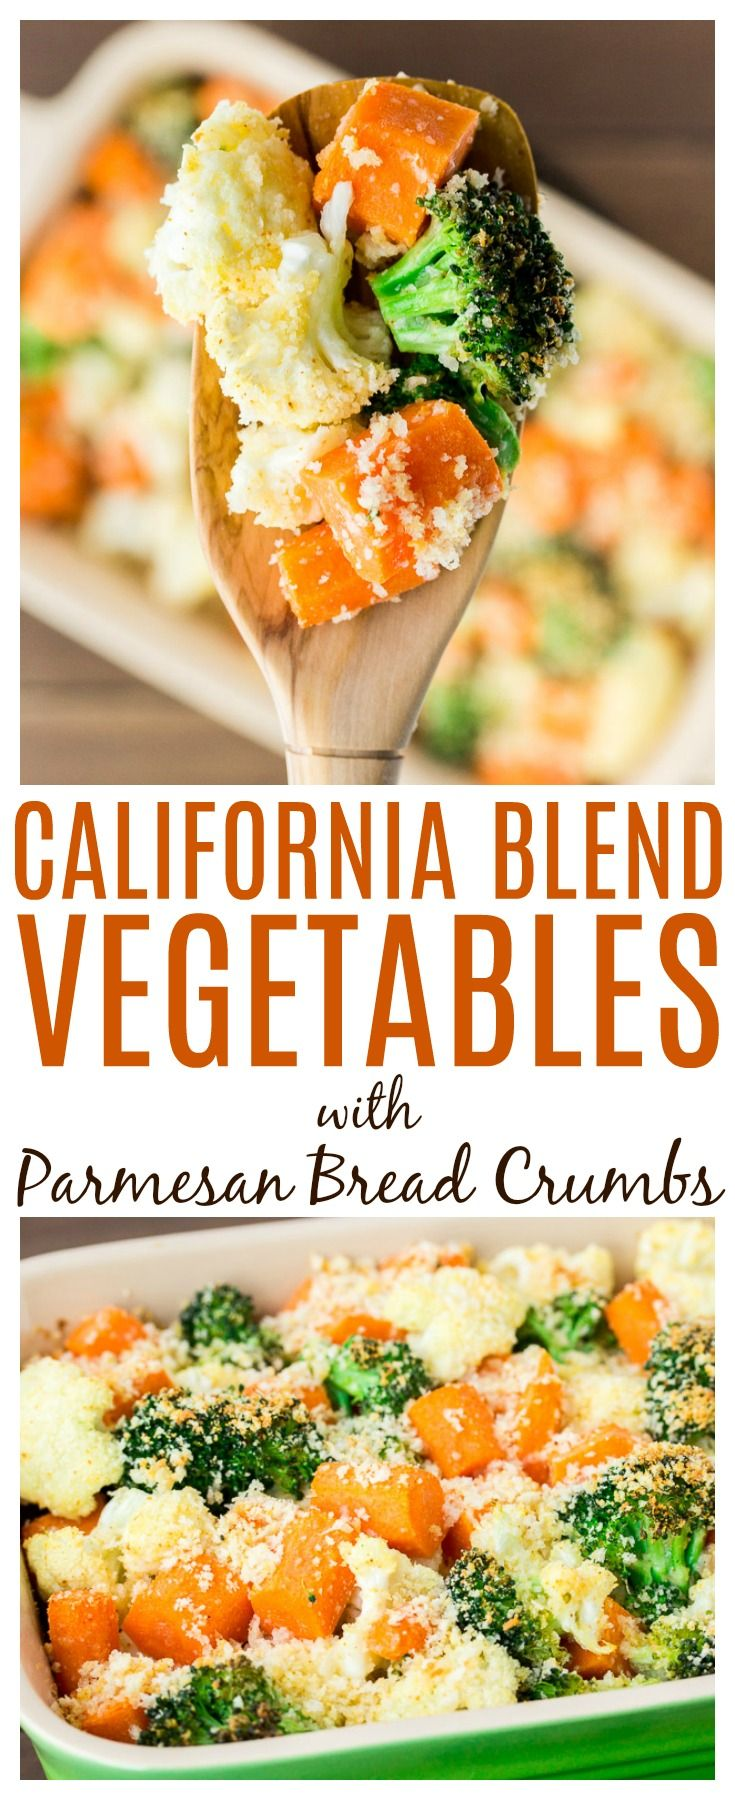 California Blend Vegetables With Parmesan Bread Crumbs Is A